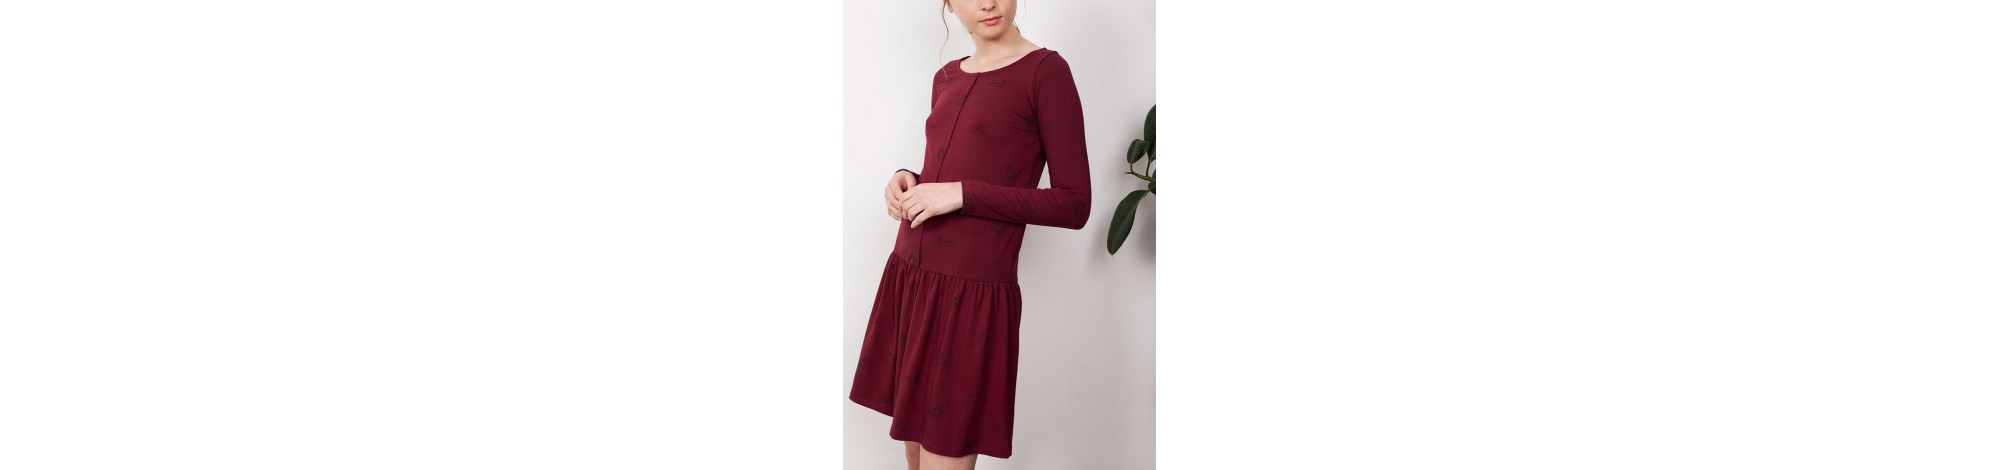 Ethical fashion brand. Winter clothing for woman 95% Fair trade organic cotton (GOTS), 5% Lycra. Designed in Barcelona.